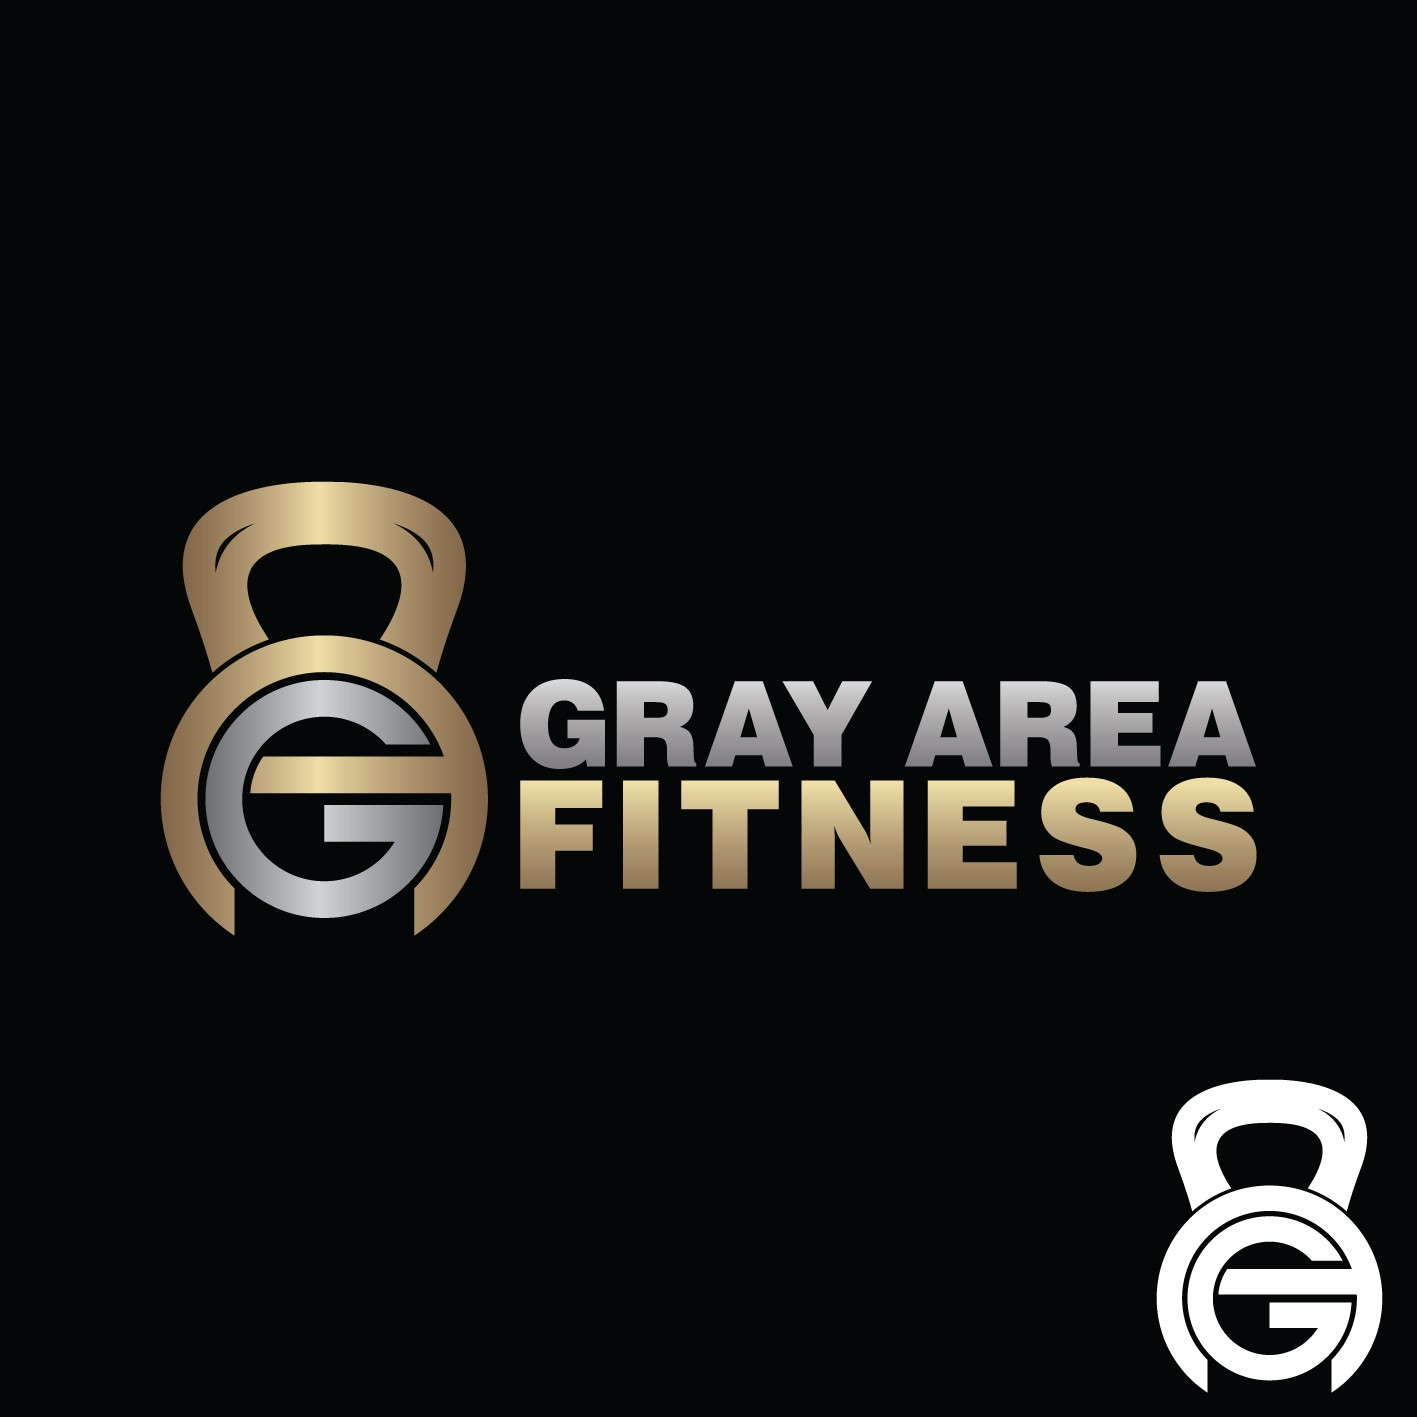 Create the logo for Gray Area Fitness!